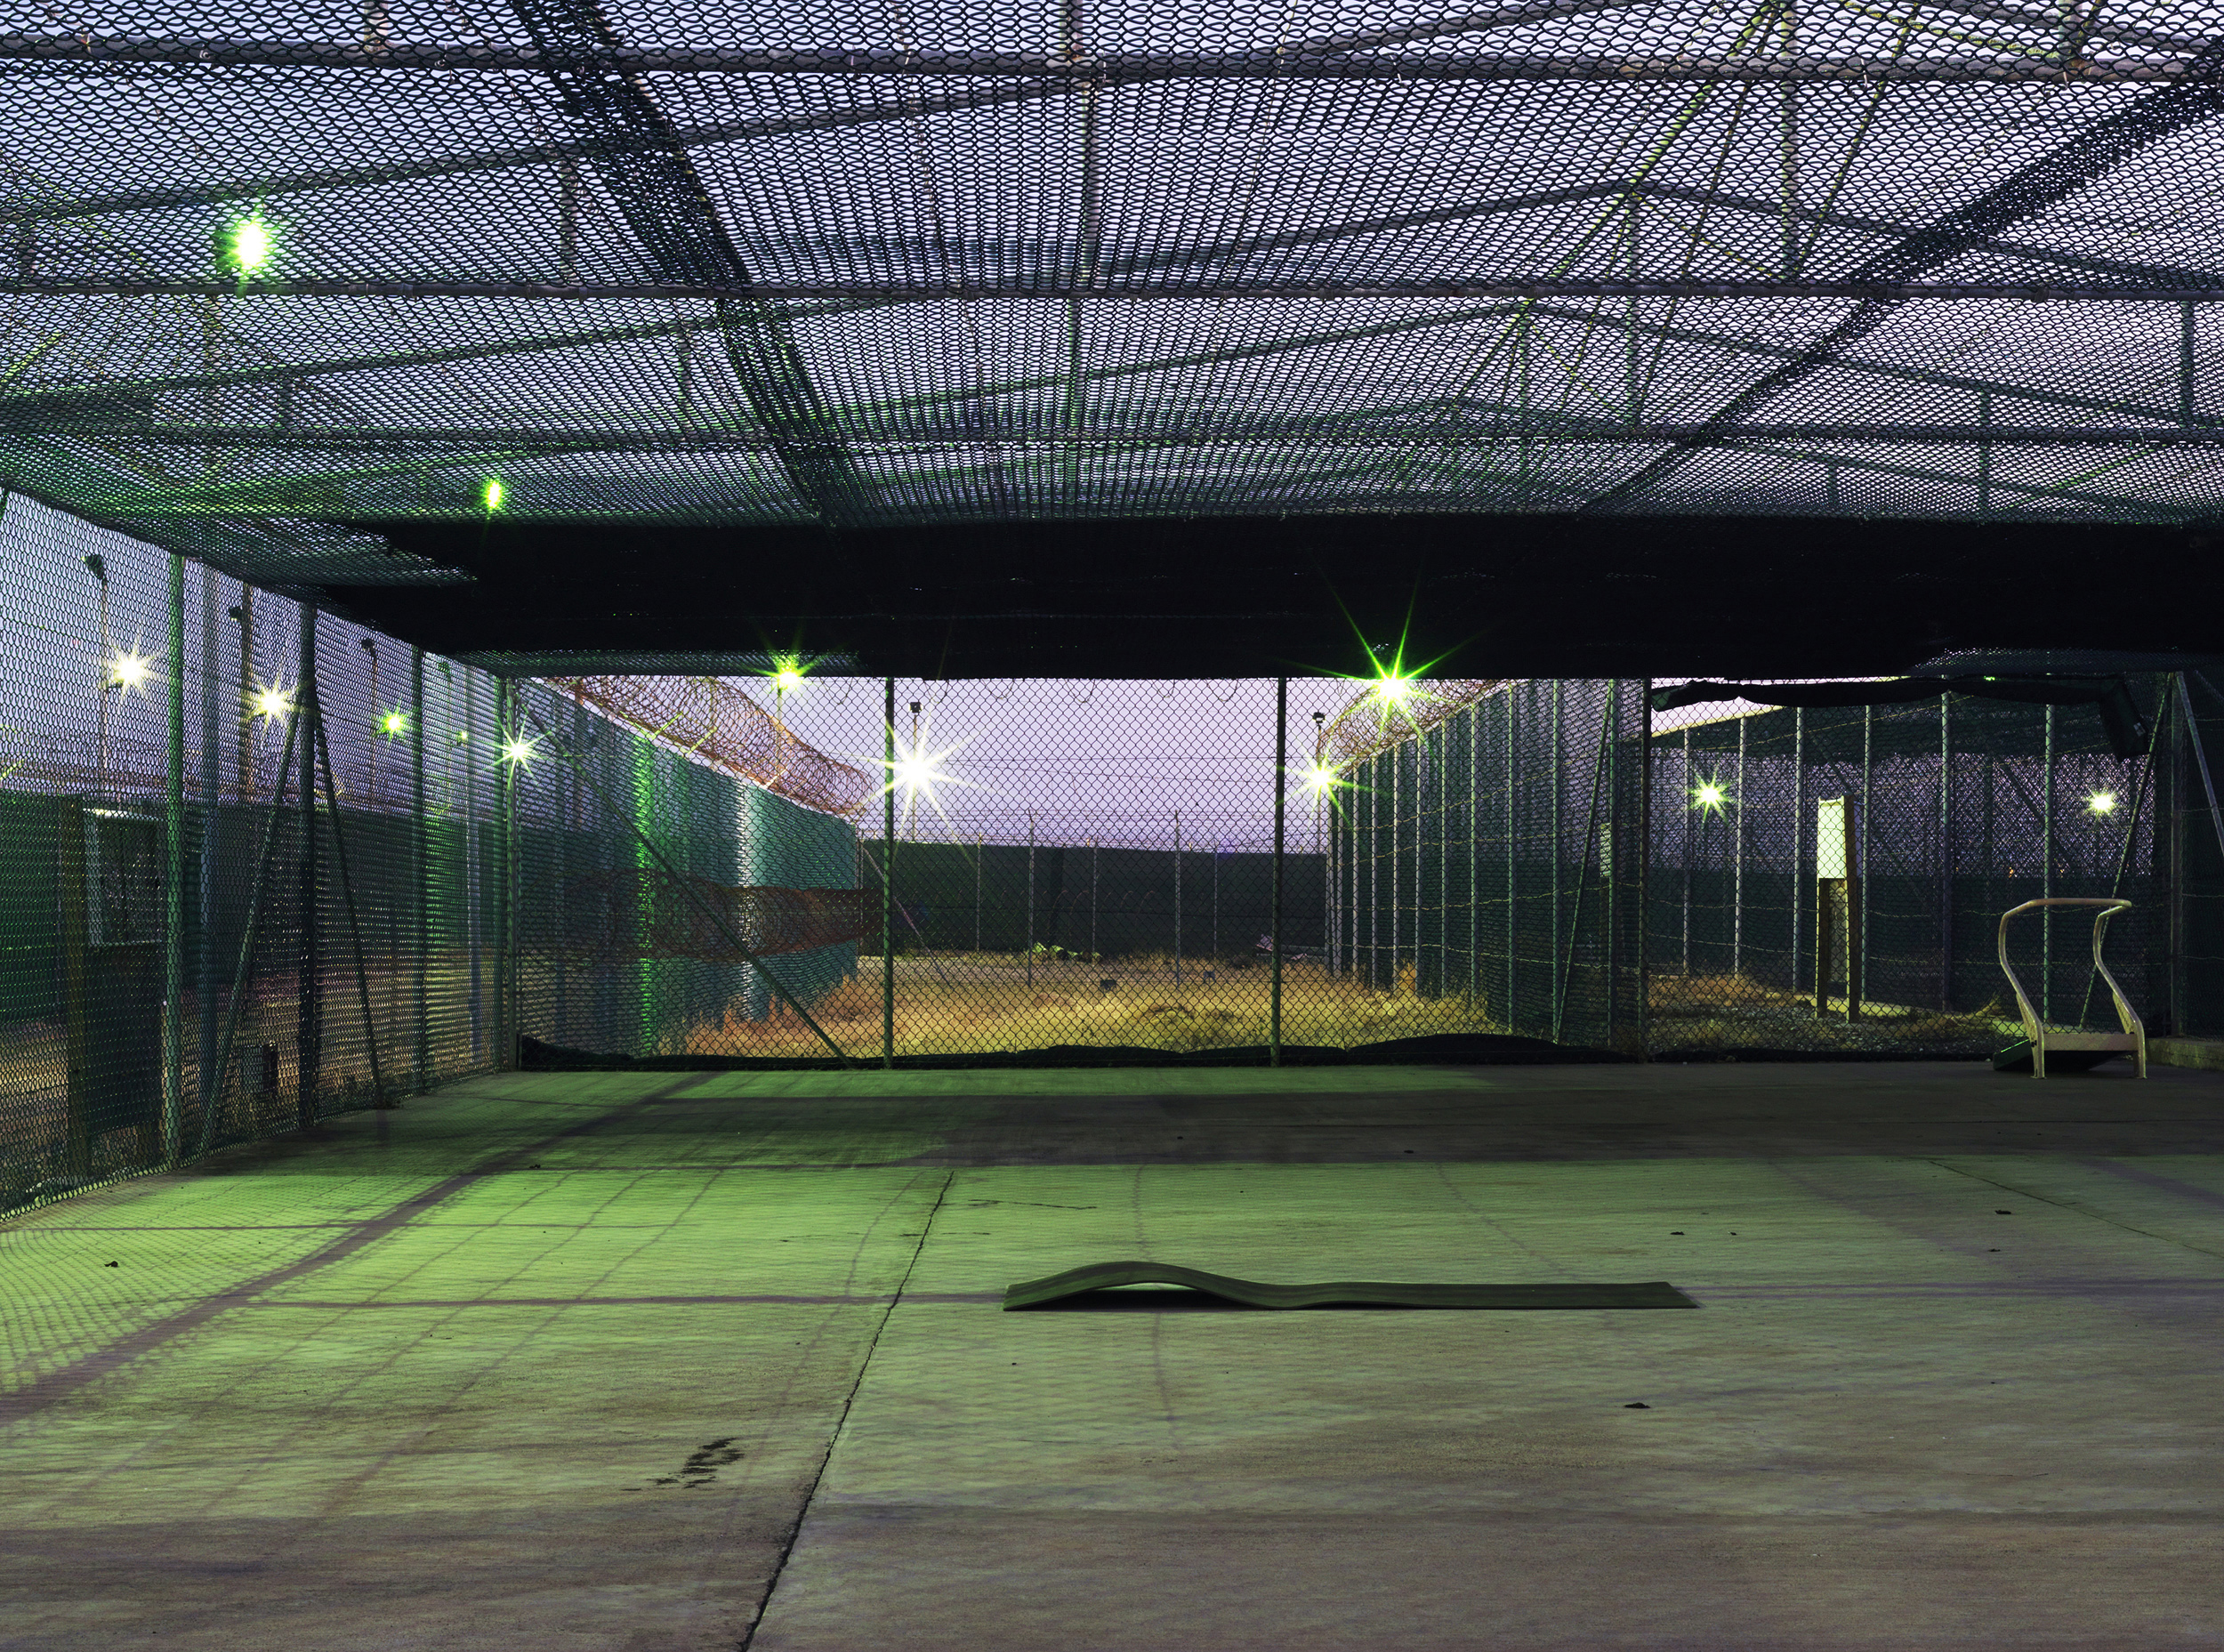 Edmund Clark Series: Guantanamo: If the Light Goes Out 2009, Guantanamo Bay Detention Facility, Cuba